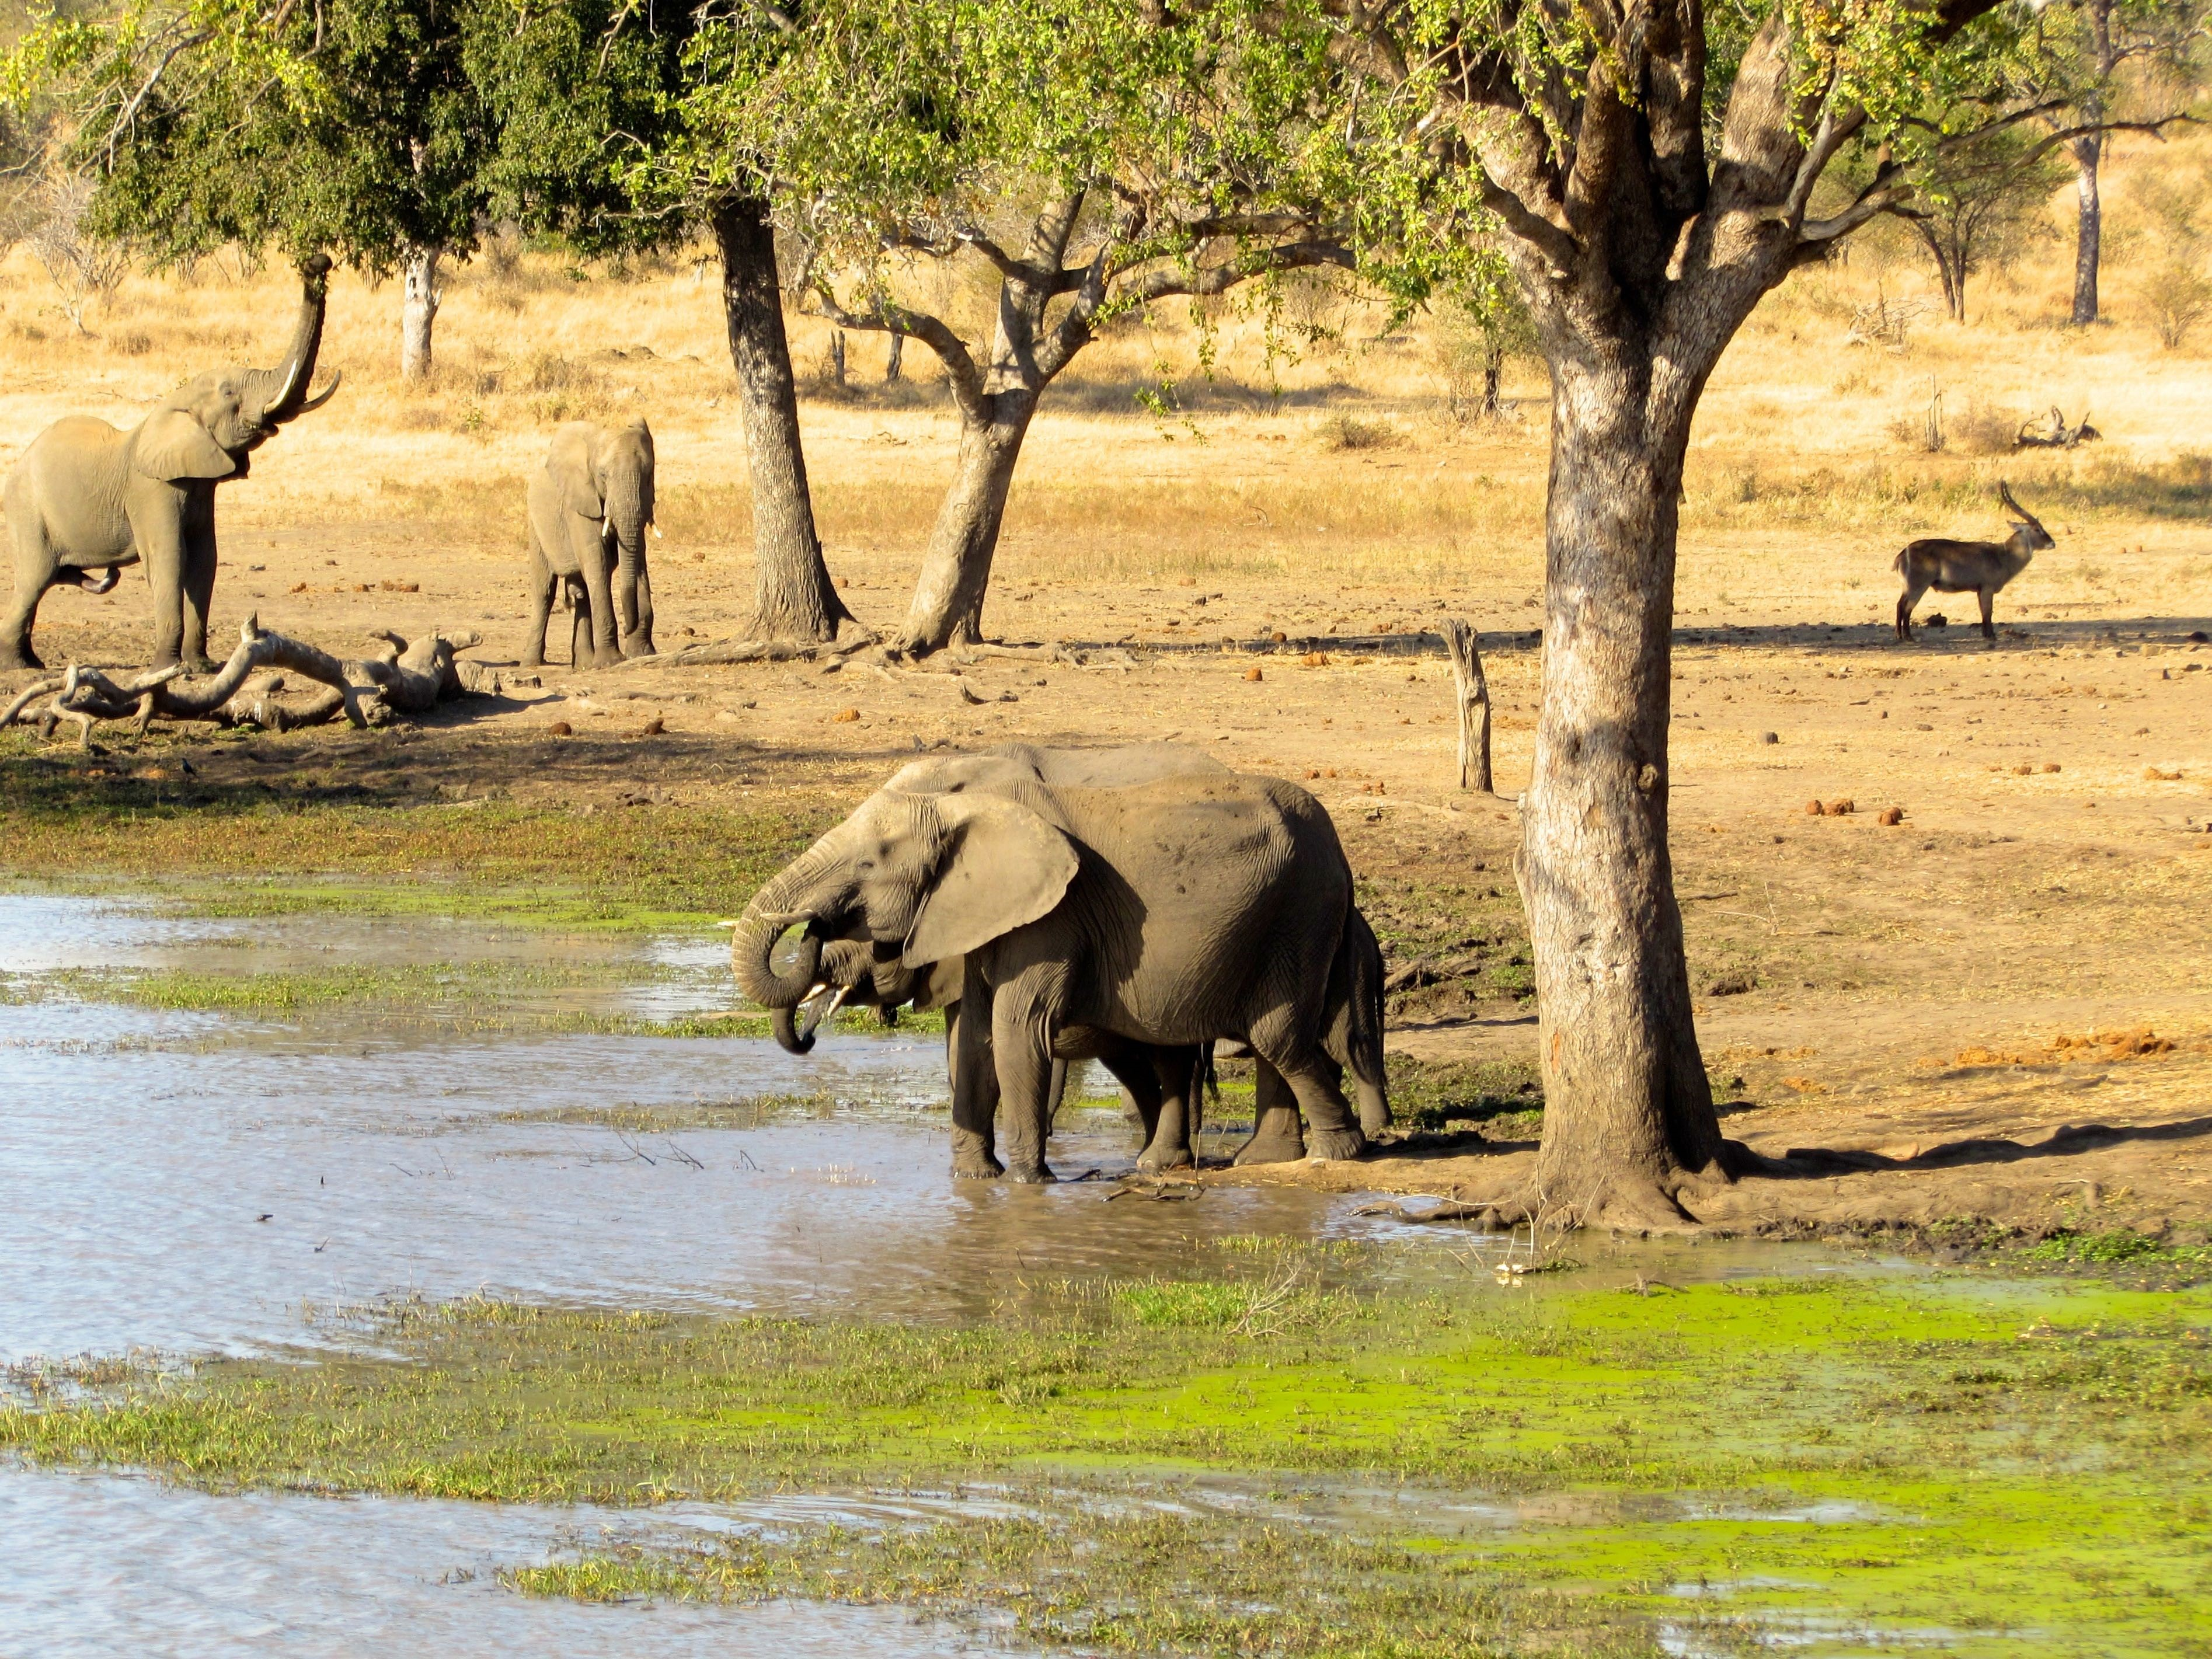 Close up of elephants (Loxodonta africana) at a savanna watering hole in Africa.